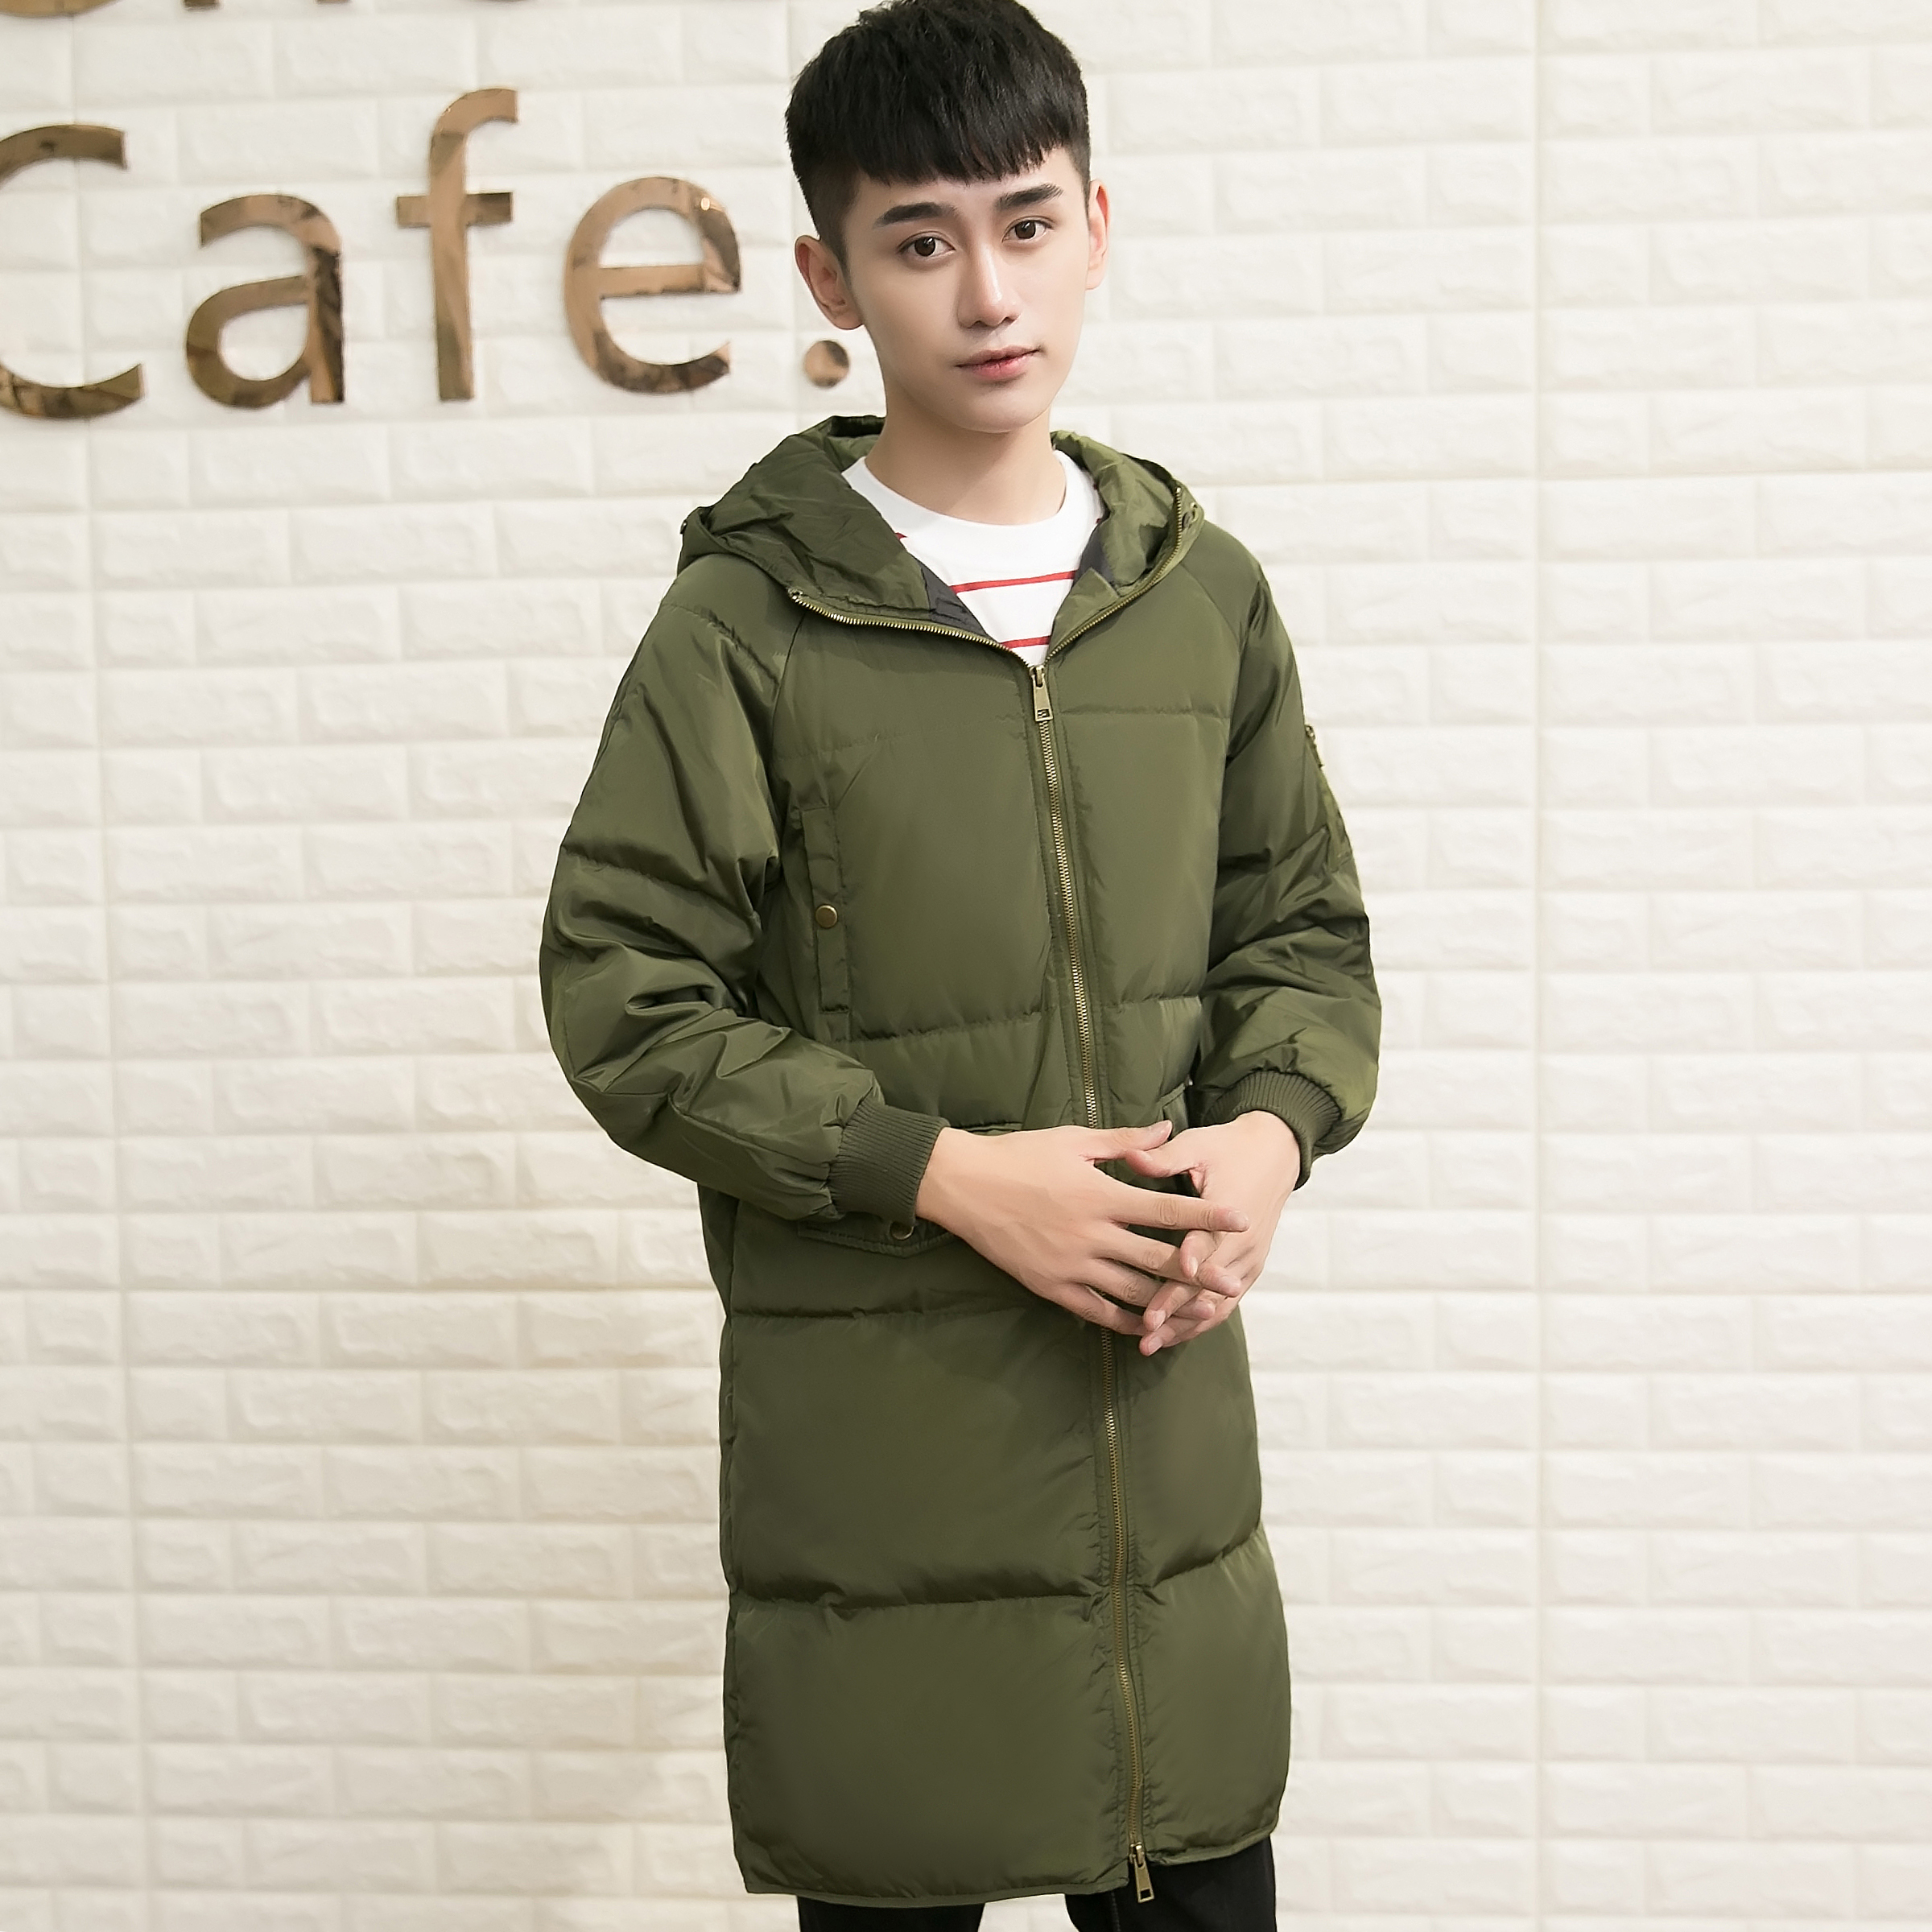 New Arrival Mens Long Down Coat Hooded Winter Jacket Men Warm Plus Size Duck Down Jacket Lovers Clothes His-And-Her Coat S-3XL